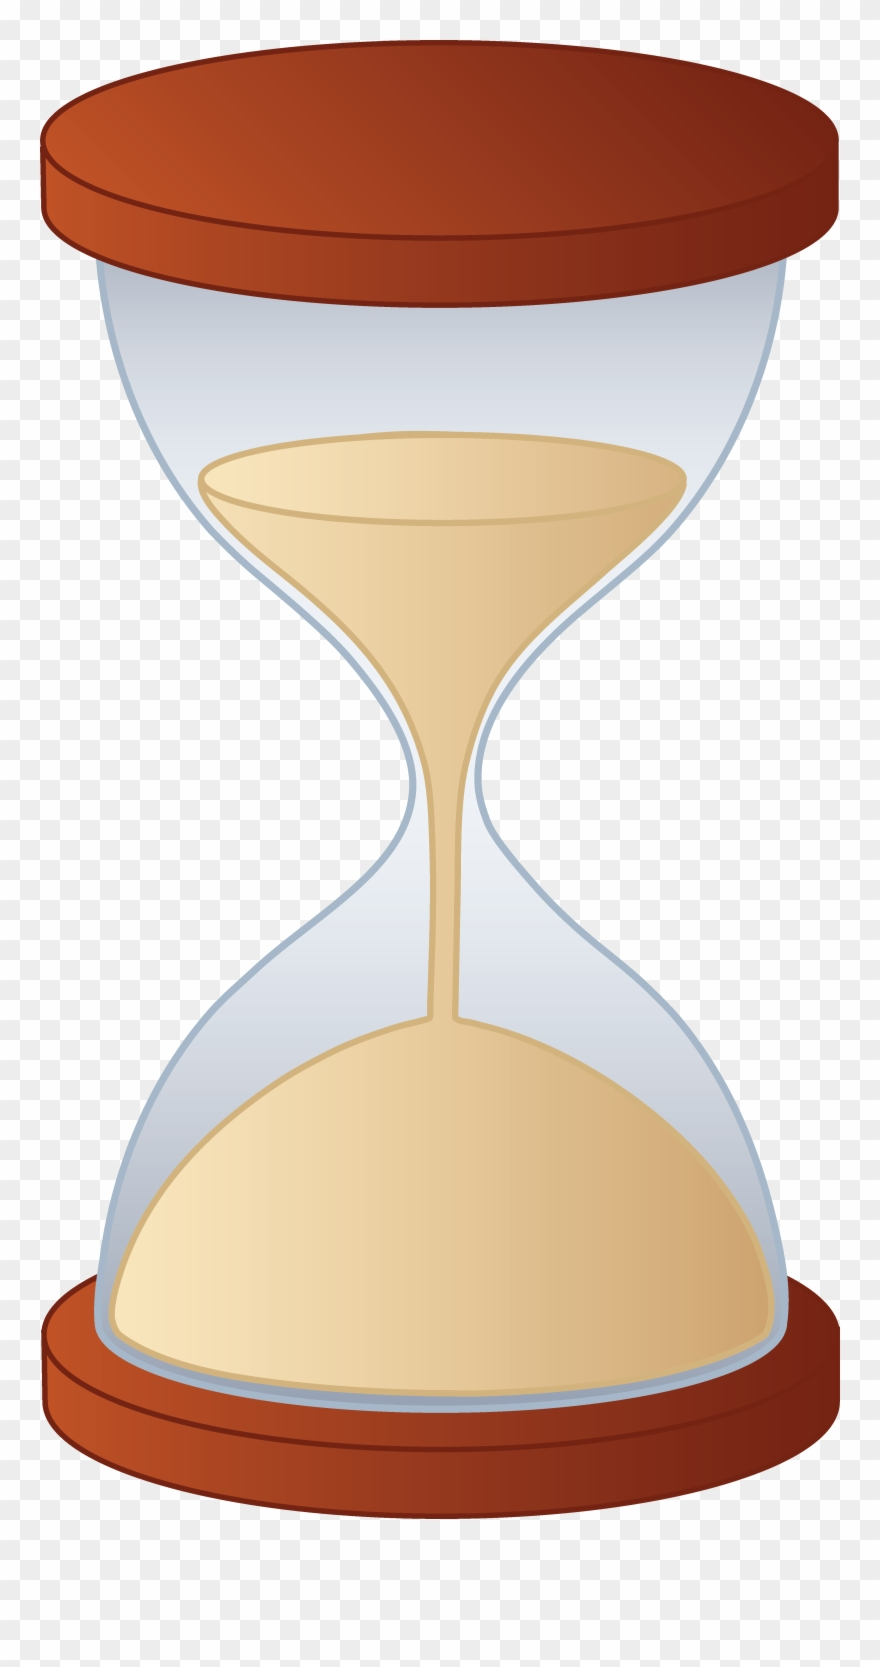 medium resolution of sand clock clipart hourglass clipart png download